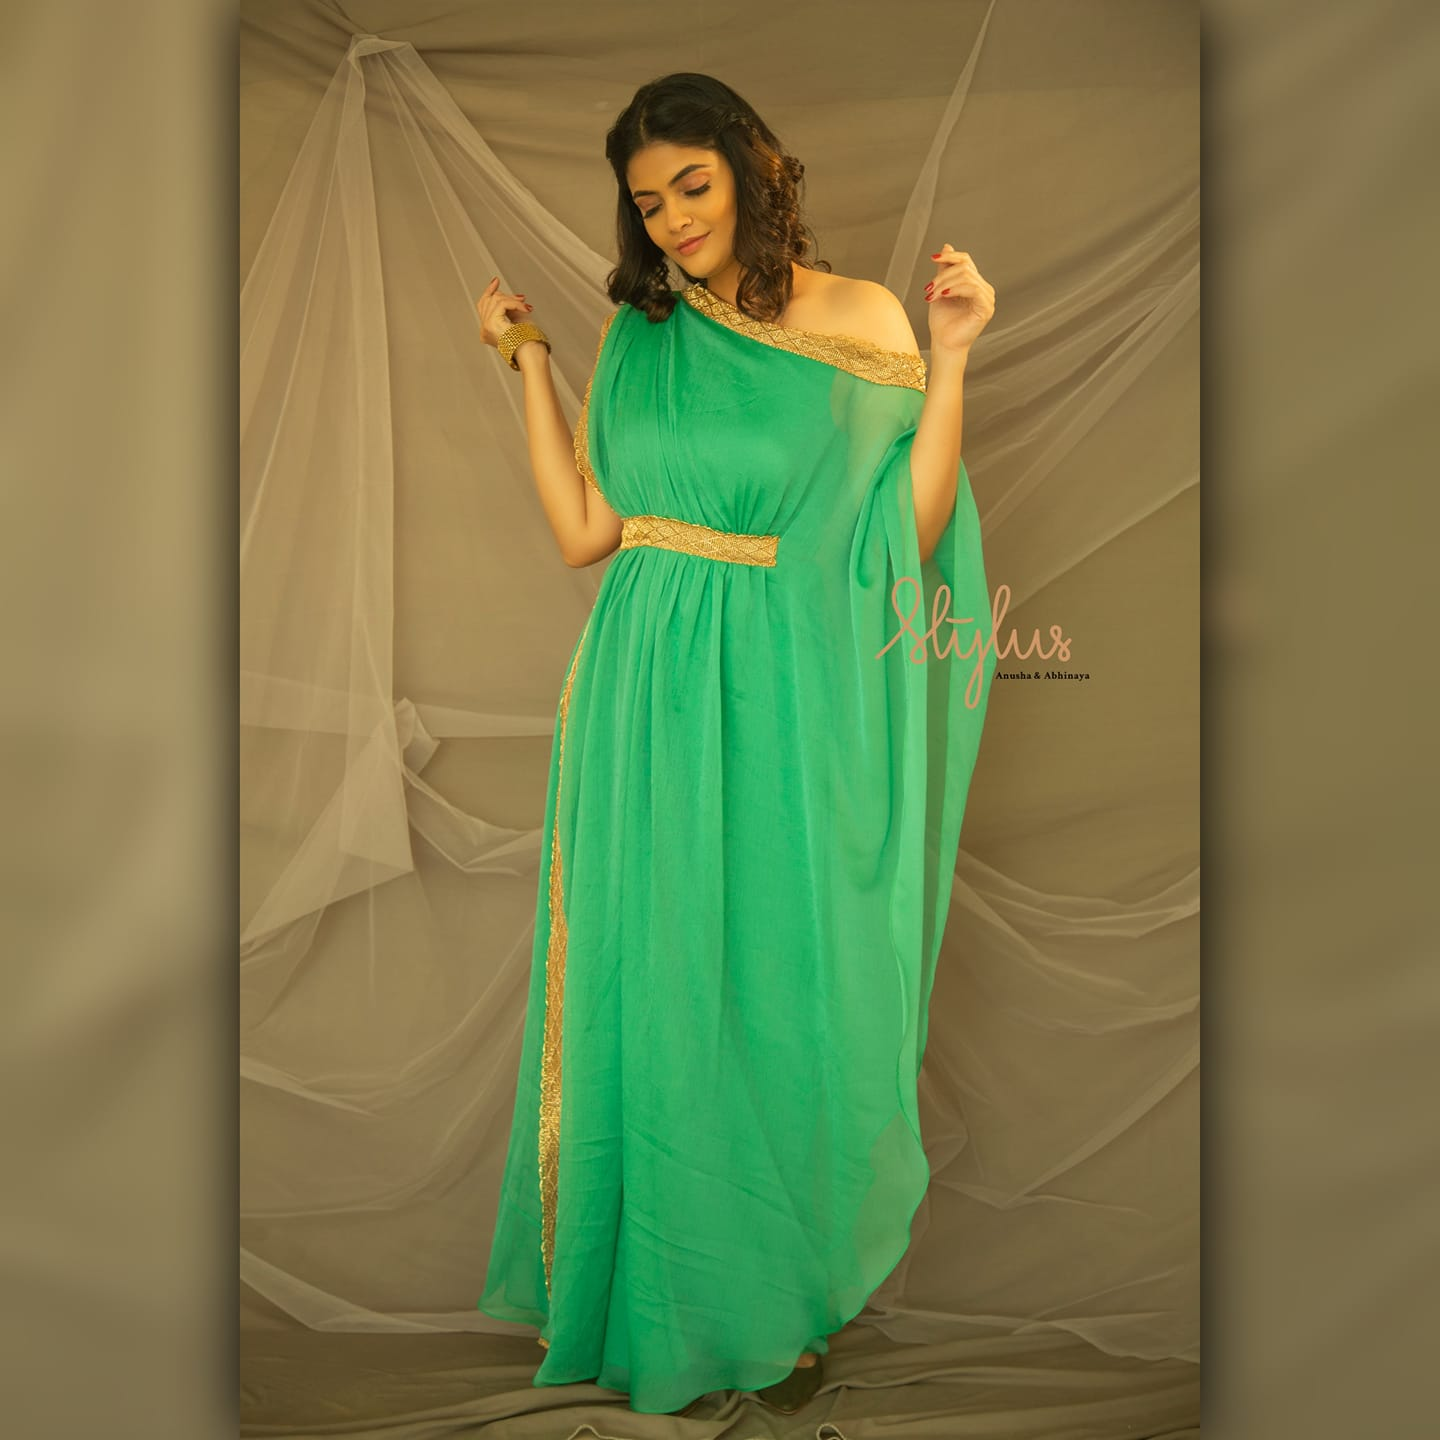 Style while you bedazzle with a smile!